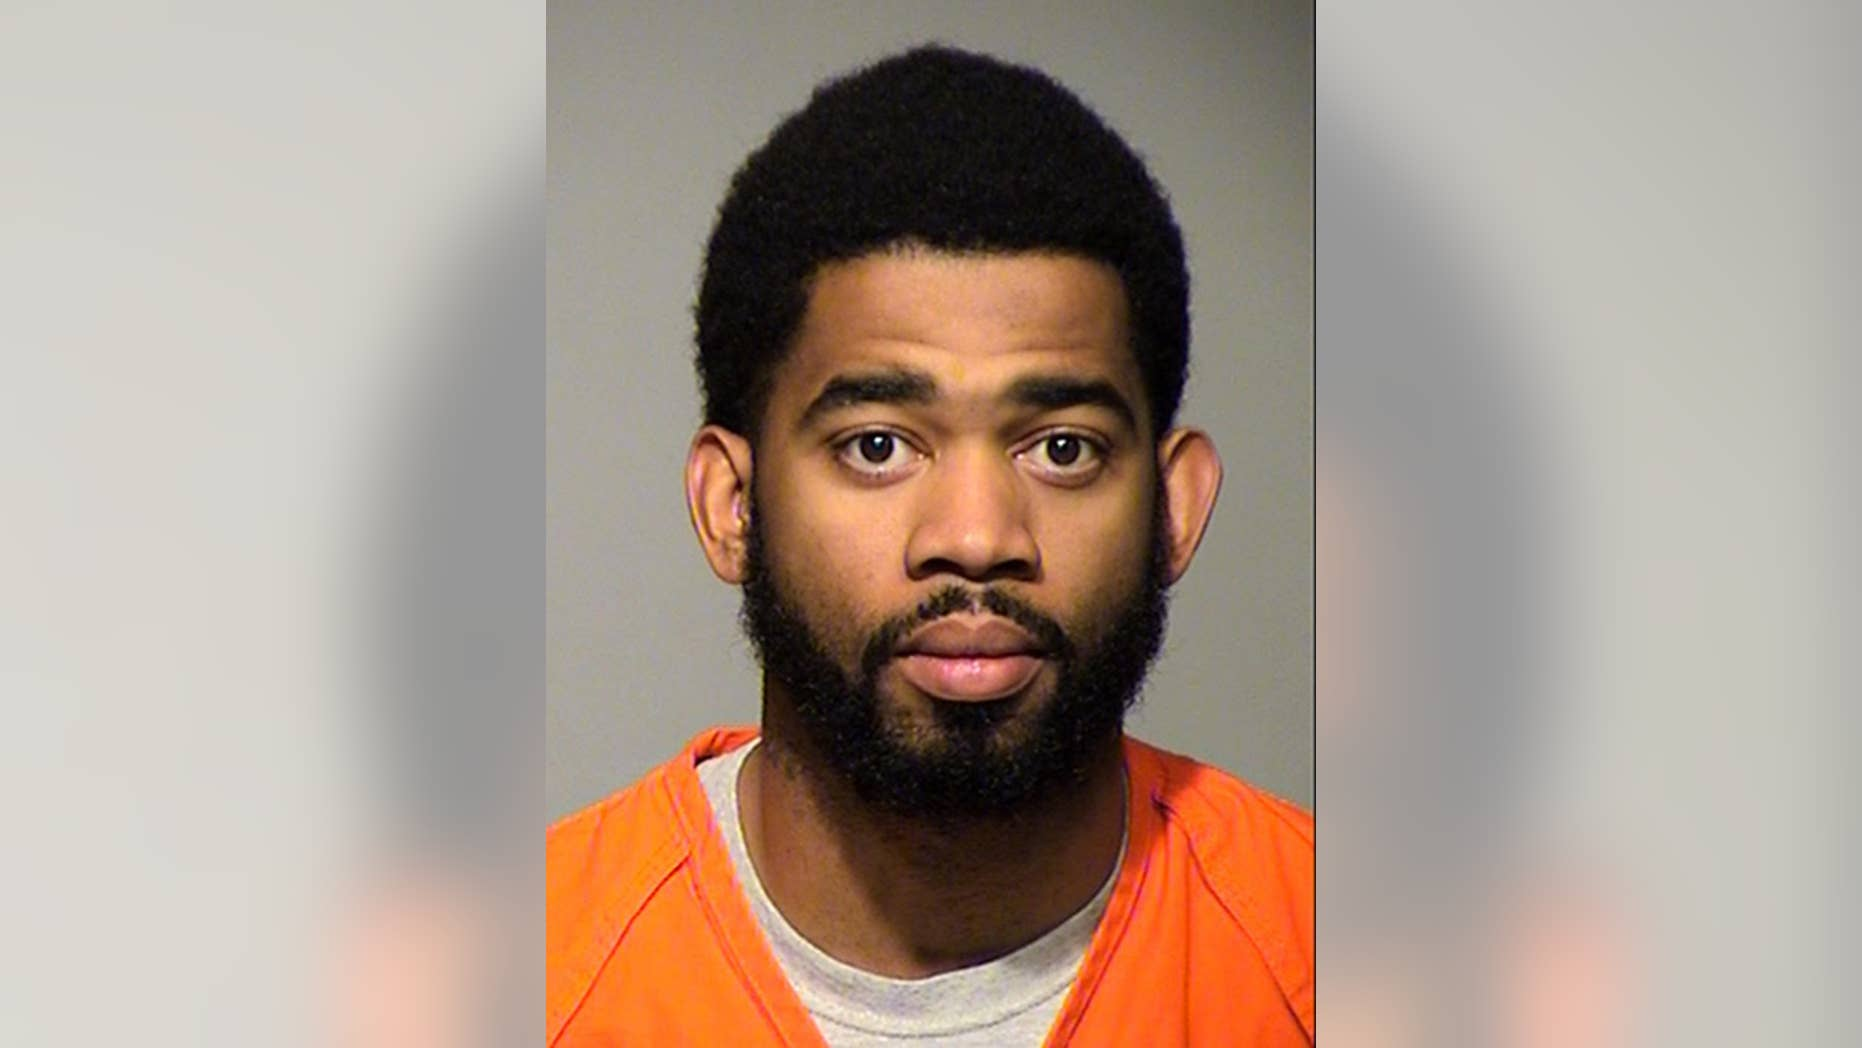 This photo provided by the Milwaukee County Sheriff's Office shows Milwaukee police officer Dominique Heaggan-Brown. Heaggan-Brown, who sparked several nights of protest after fatally shooting a black man in August, was arrested Wednesday, Oct. 19, 2016, and charged with five counts of sexual misconduct in a separate case stemming from an alleged attack two days after the shooting. (Milwaukee County Sheriff's Office via AP)